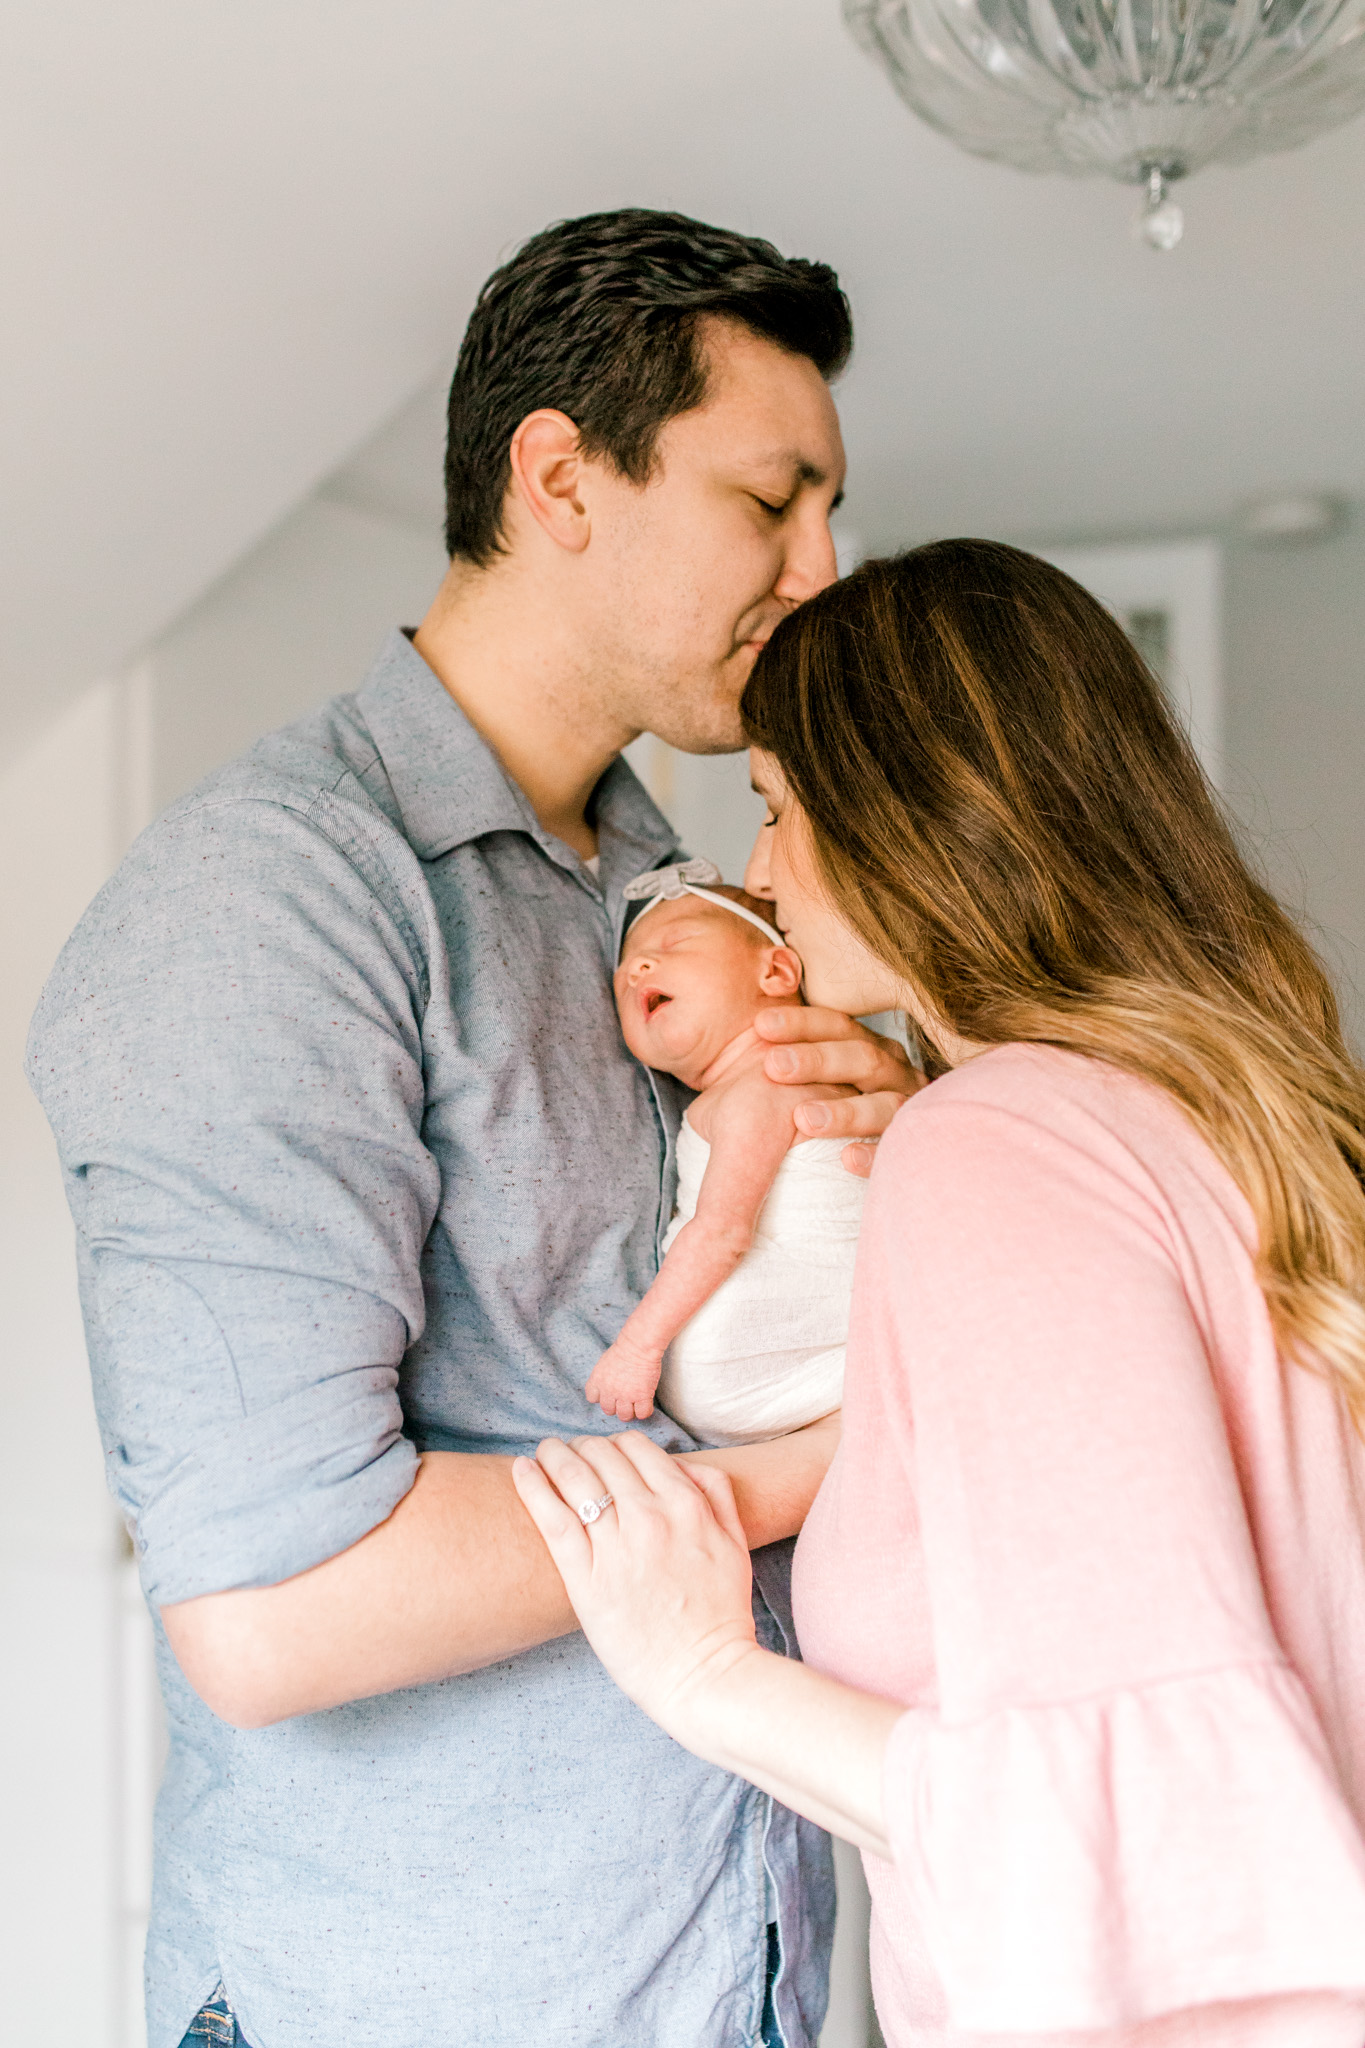 Newborn Lifestyle Session   In-Home Lifestyle   West Michigan Family Photographer   Light & Airy Photographer